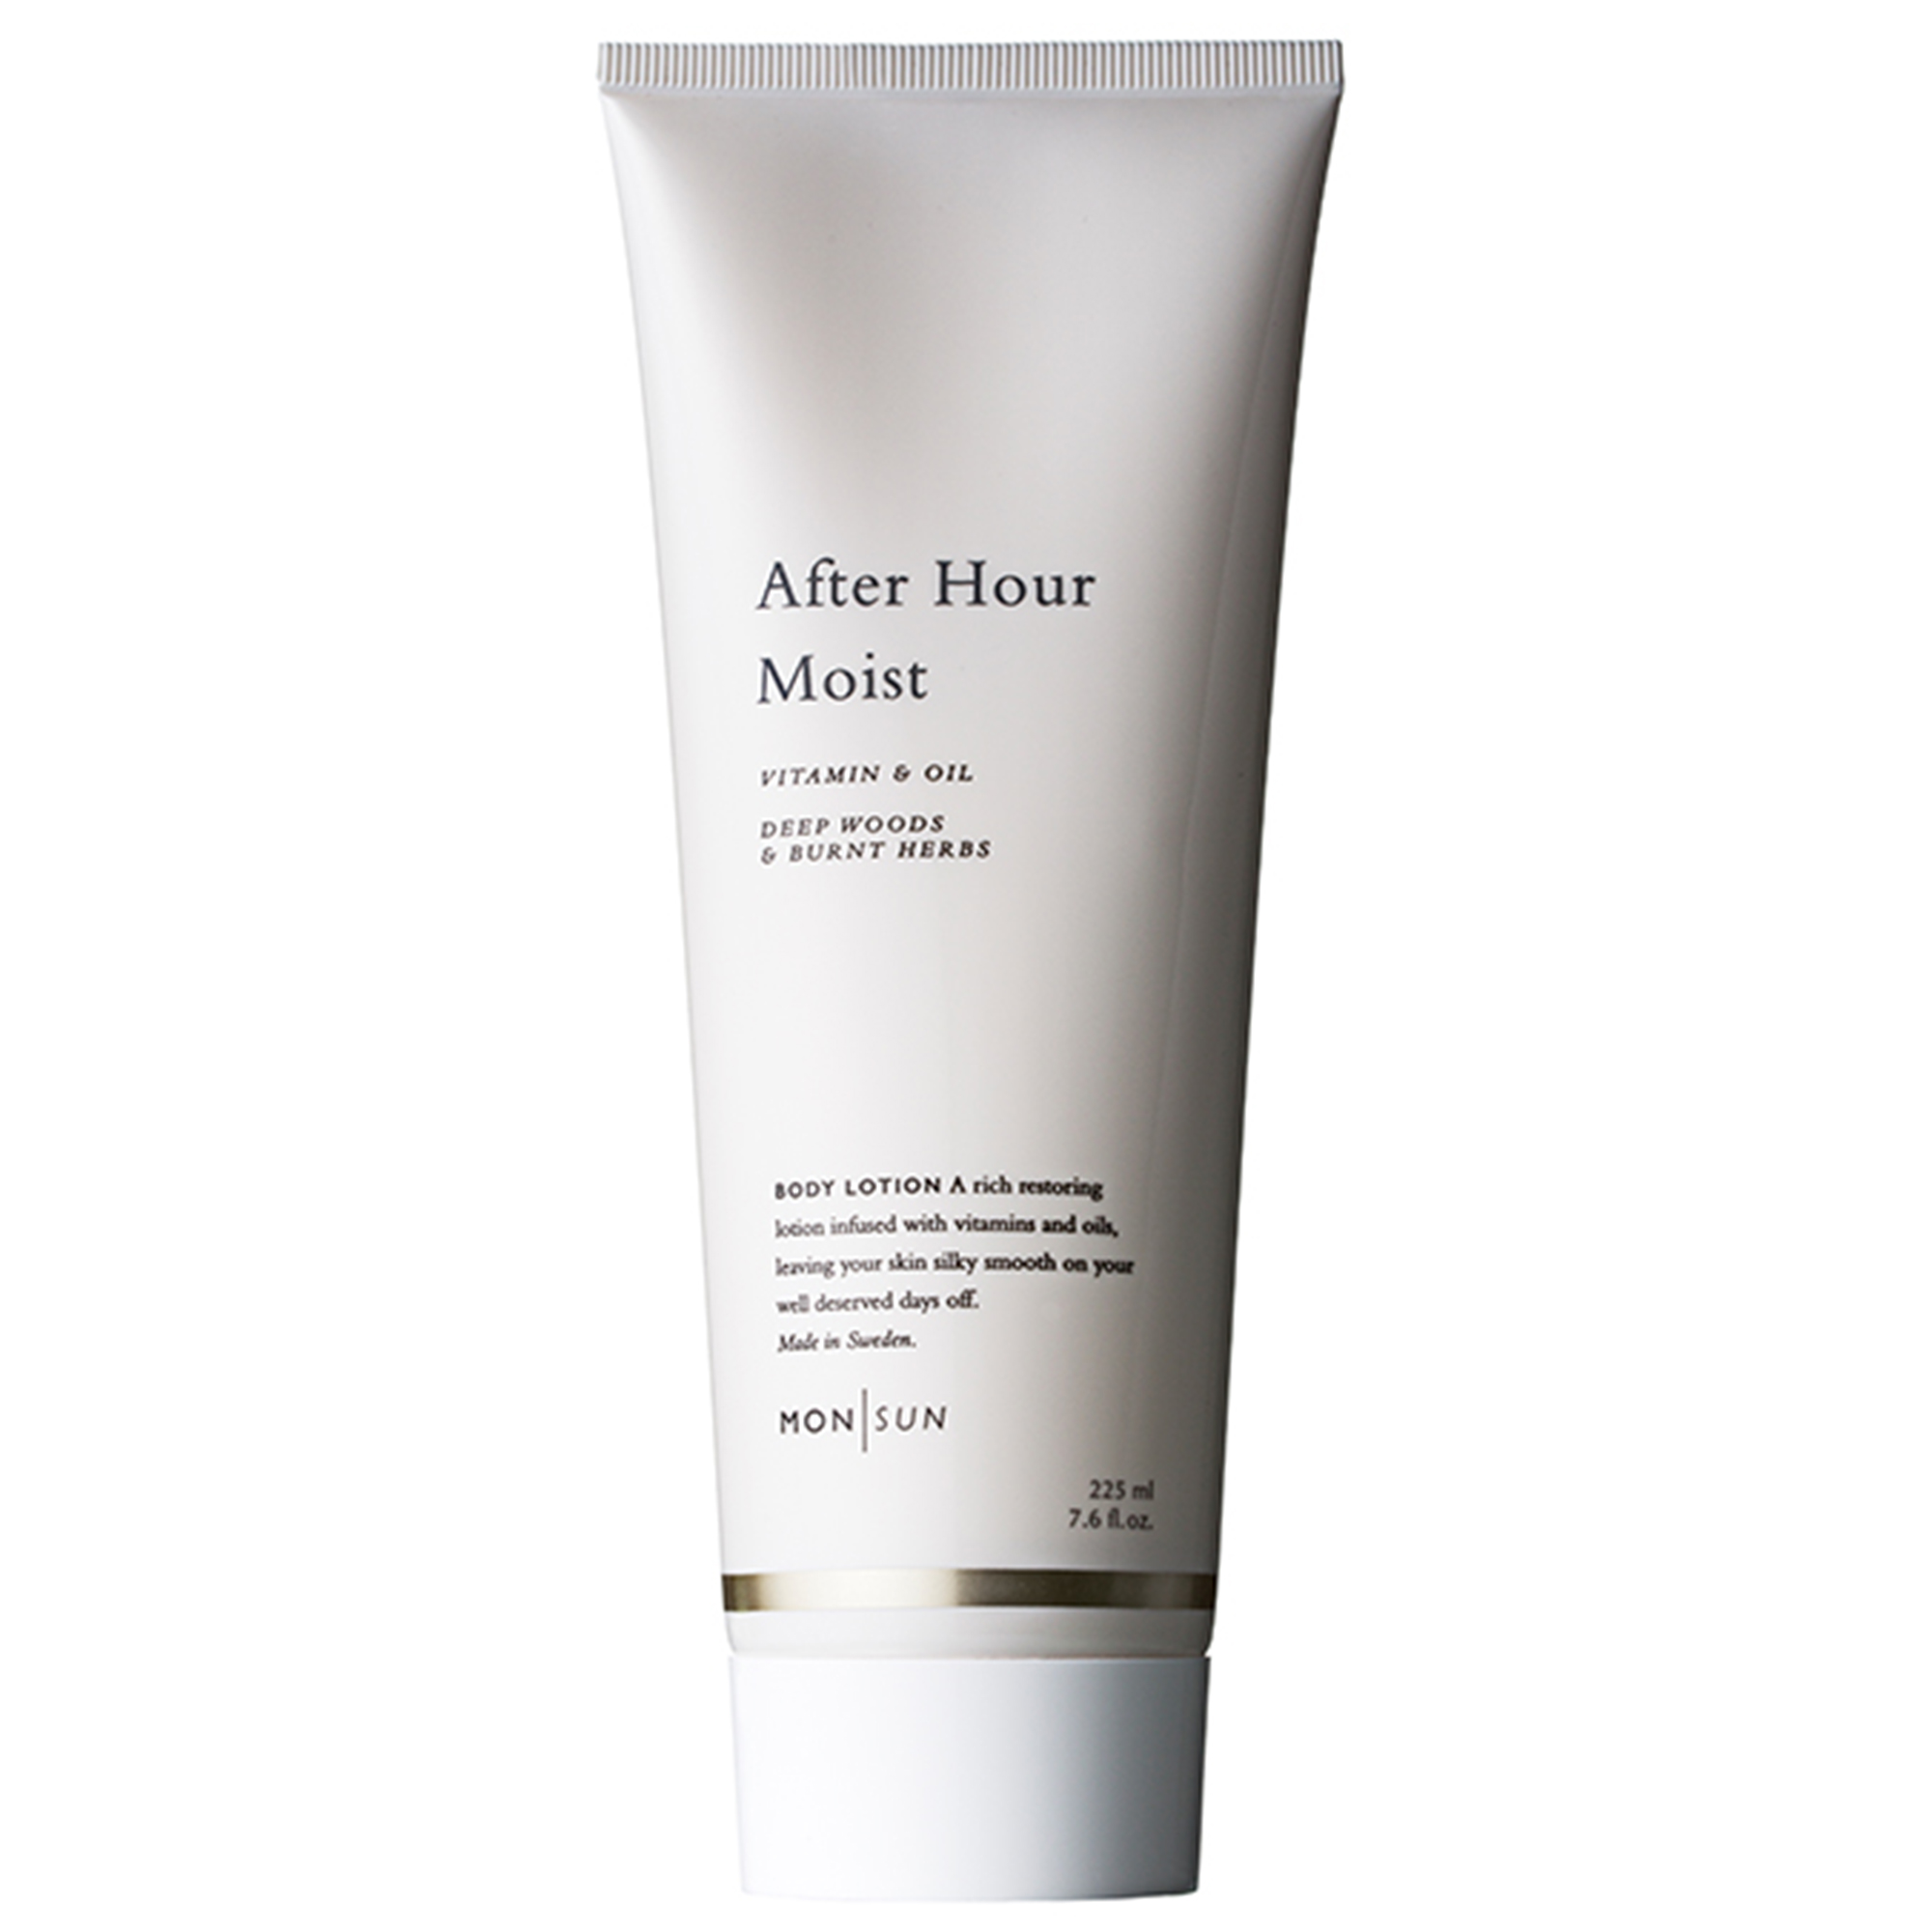 After Hour Moist Vitamin & Oil Body Lotion